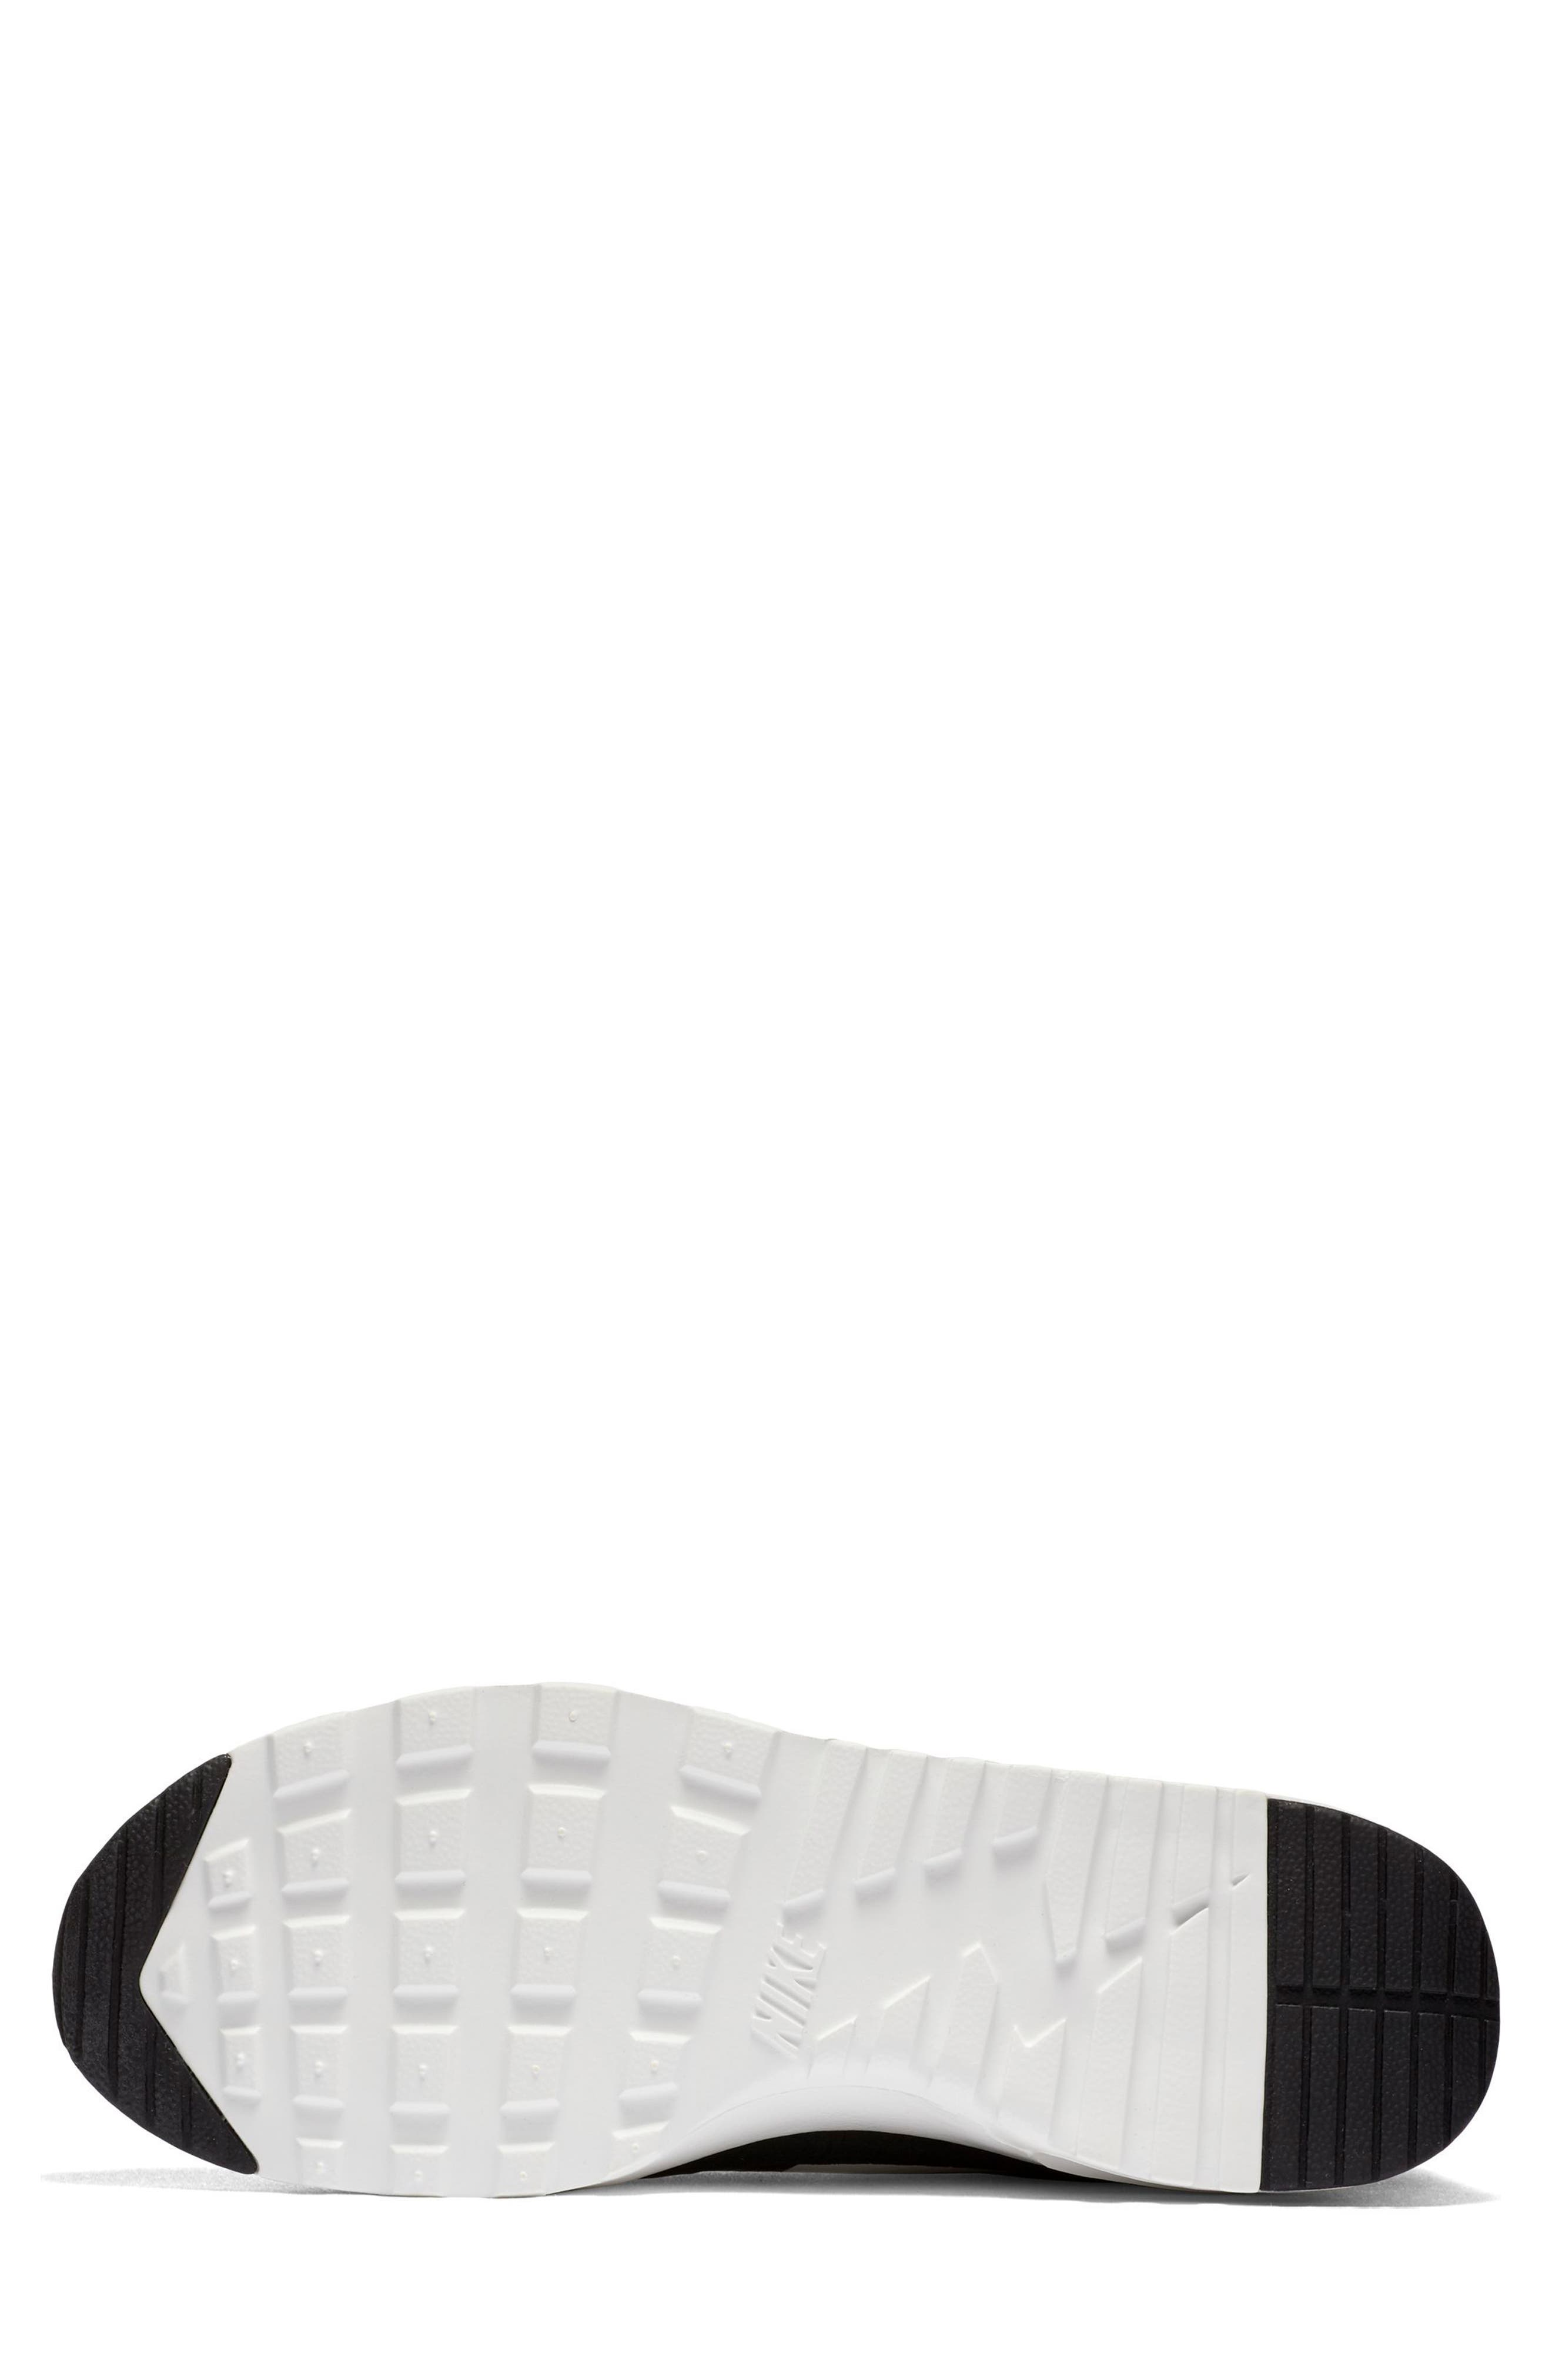 Air Max Thea Sneaker,                             Alternate thumbnail 6, color,                             Black/ Summit White